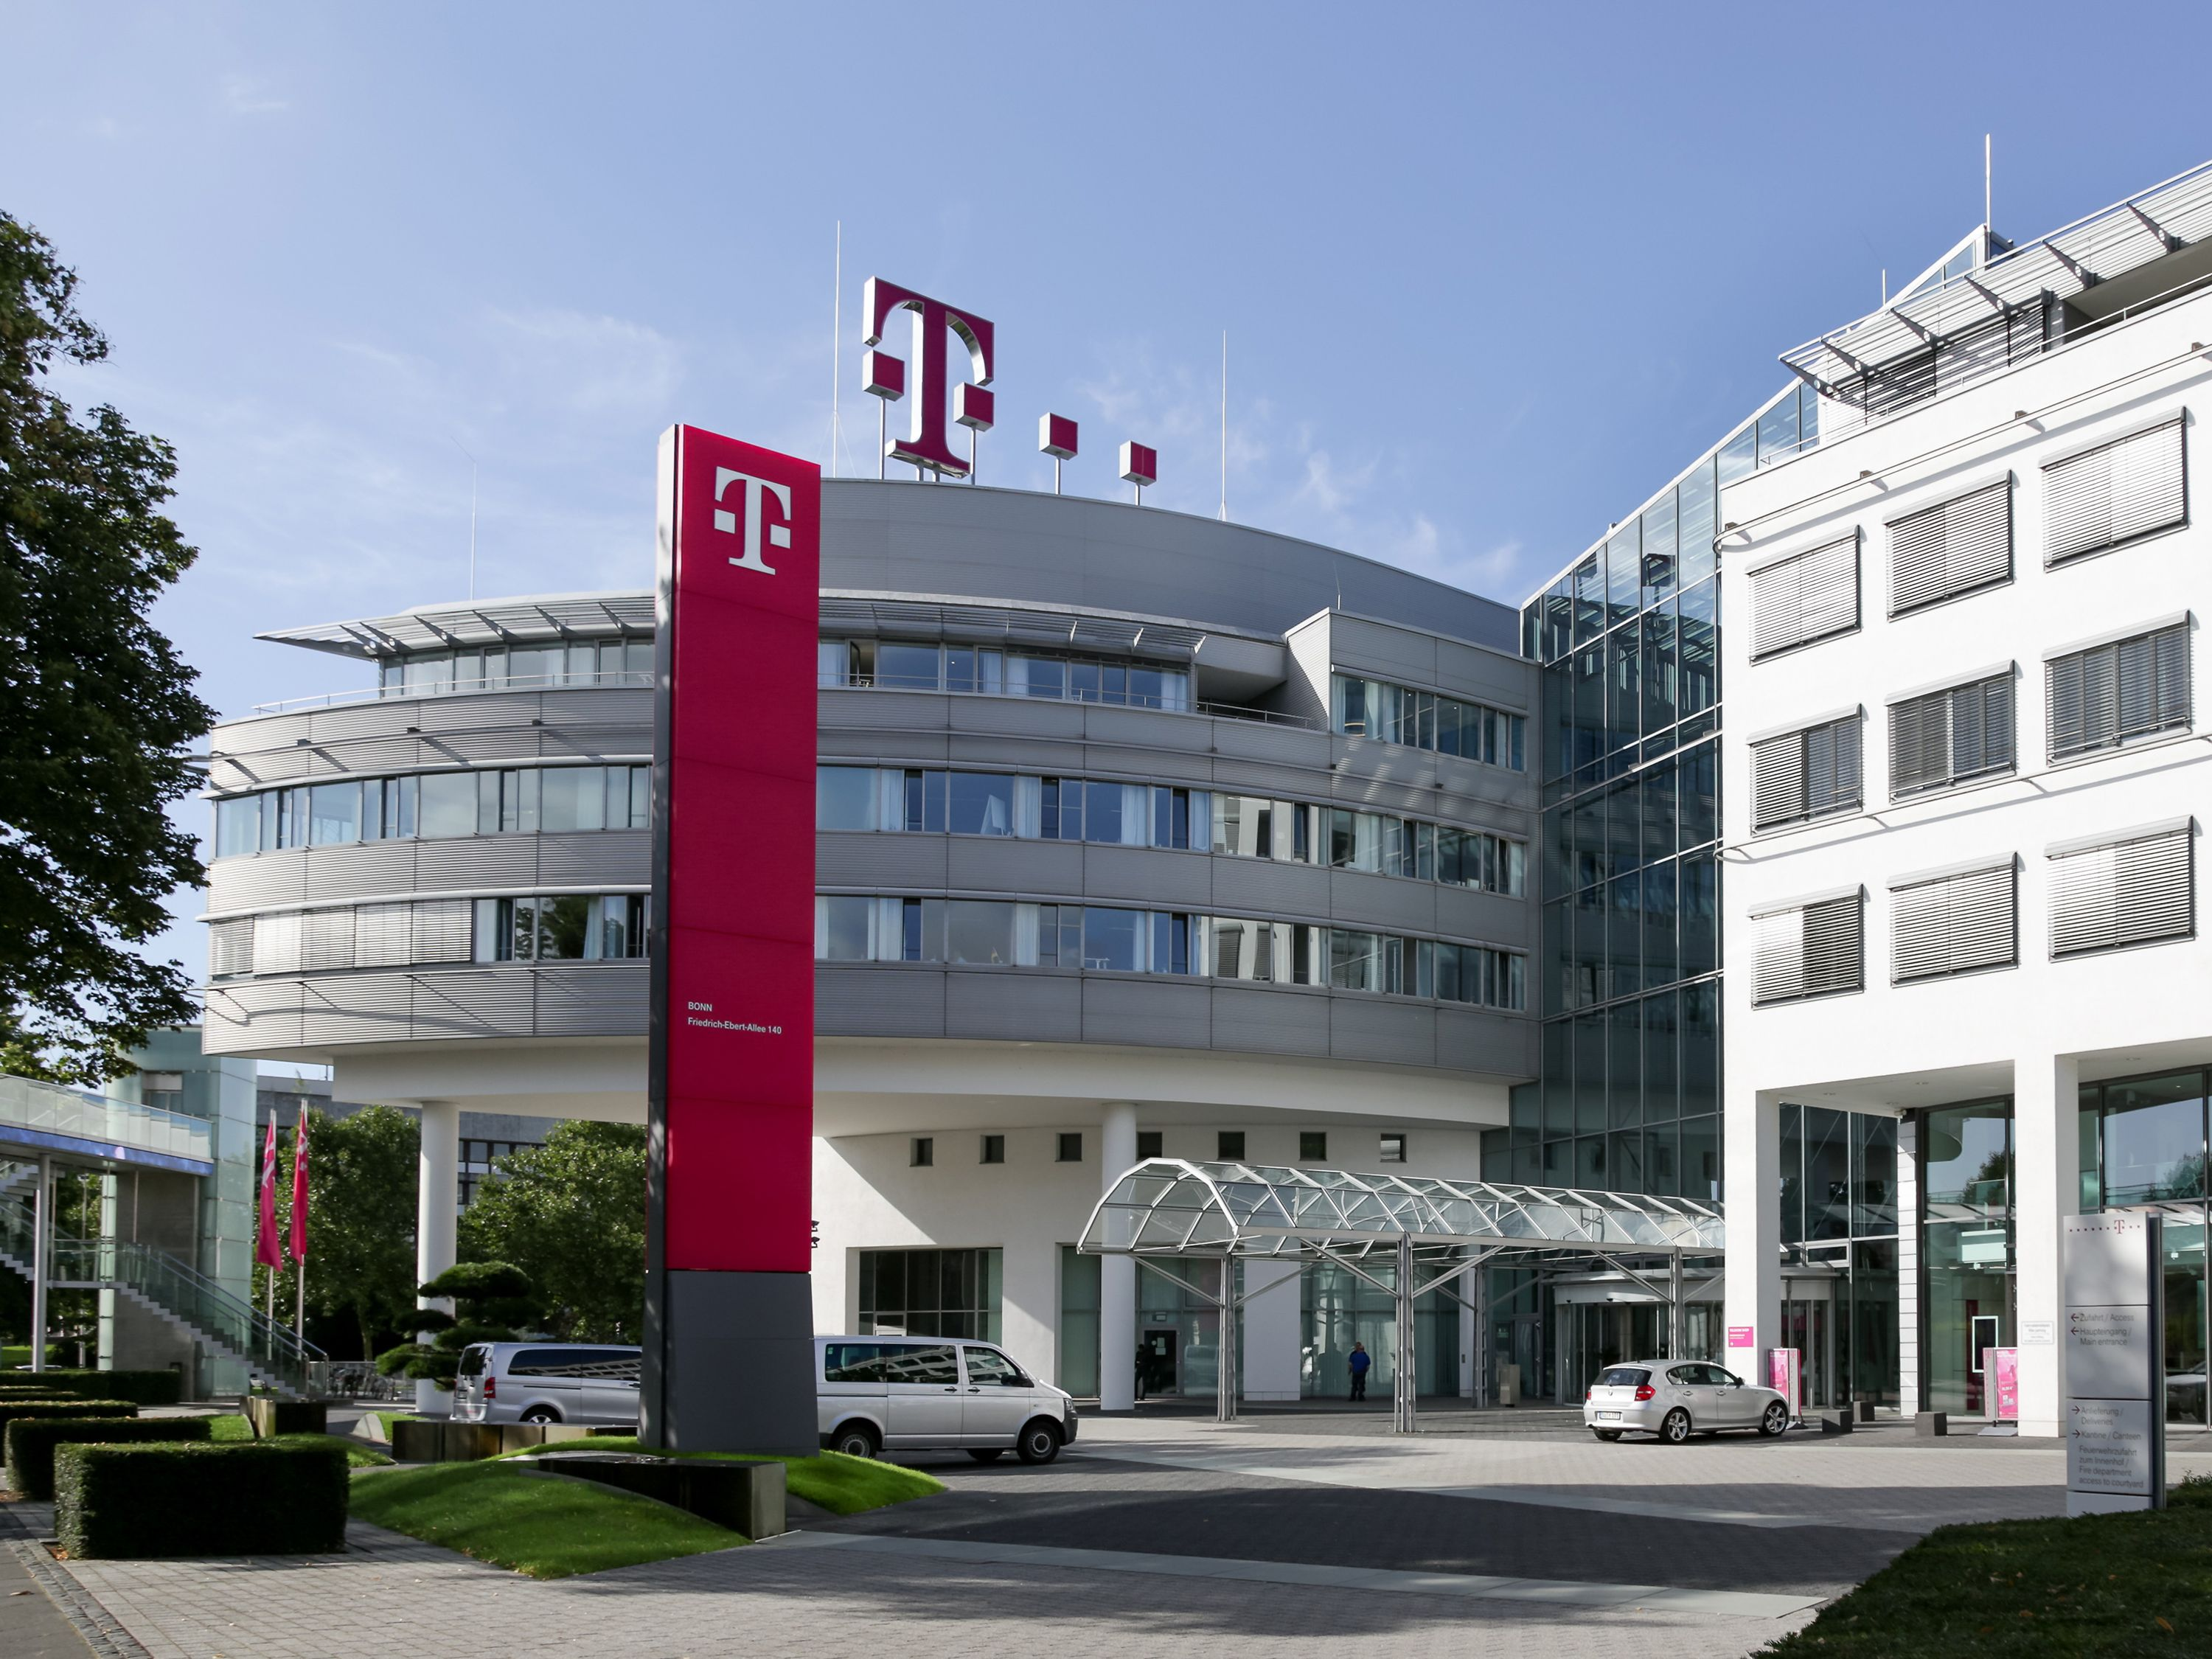 Branschweiger selects Deutsche Telekom Connected Things Hub